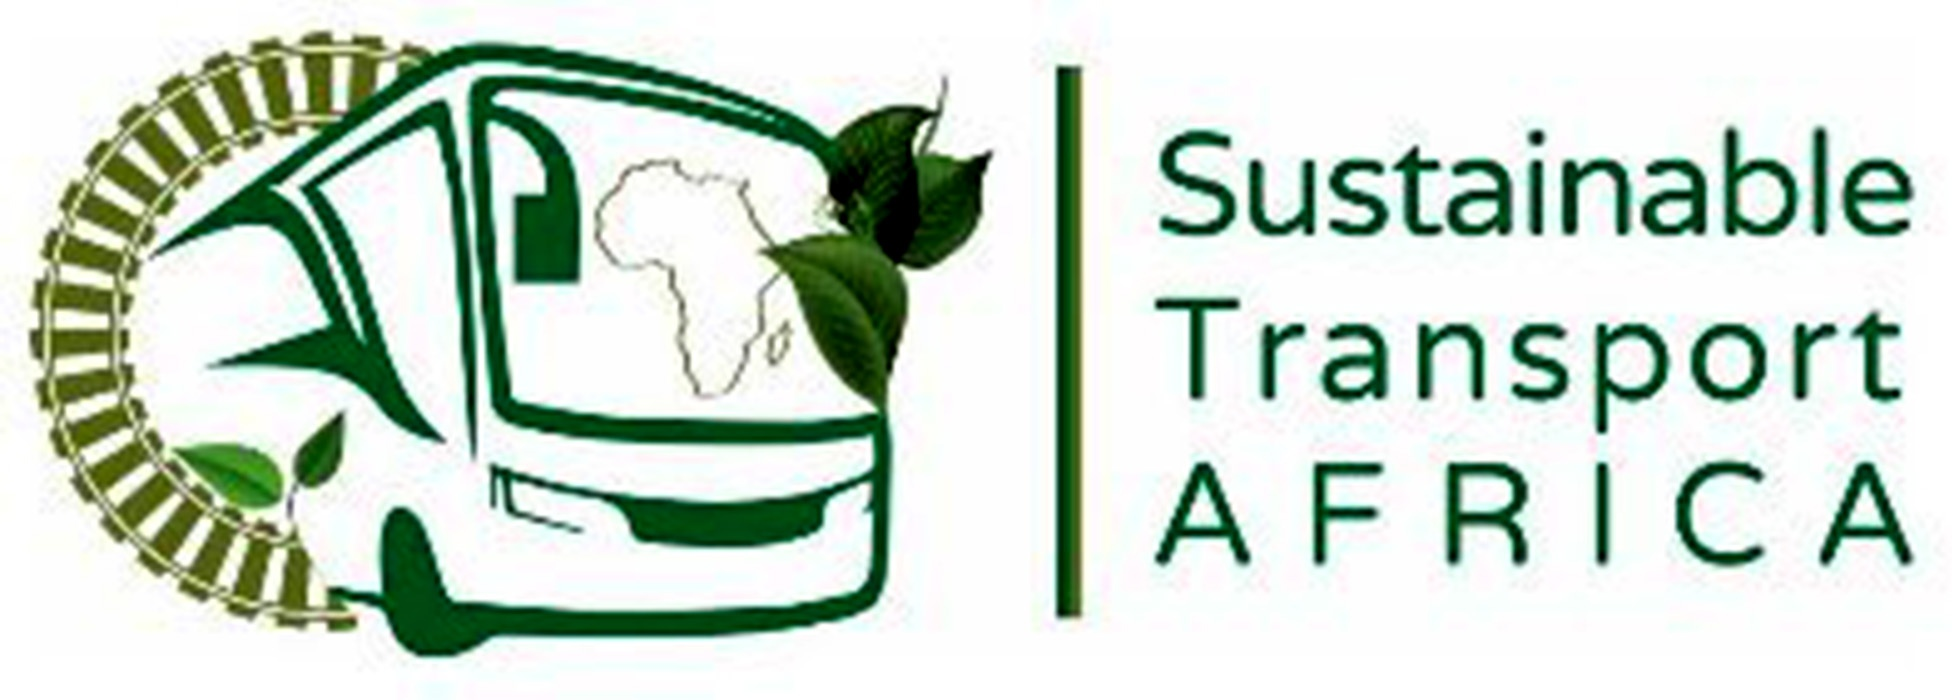 Sustainabletransportafrica